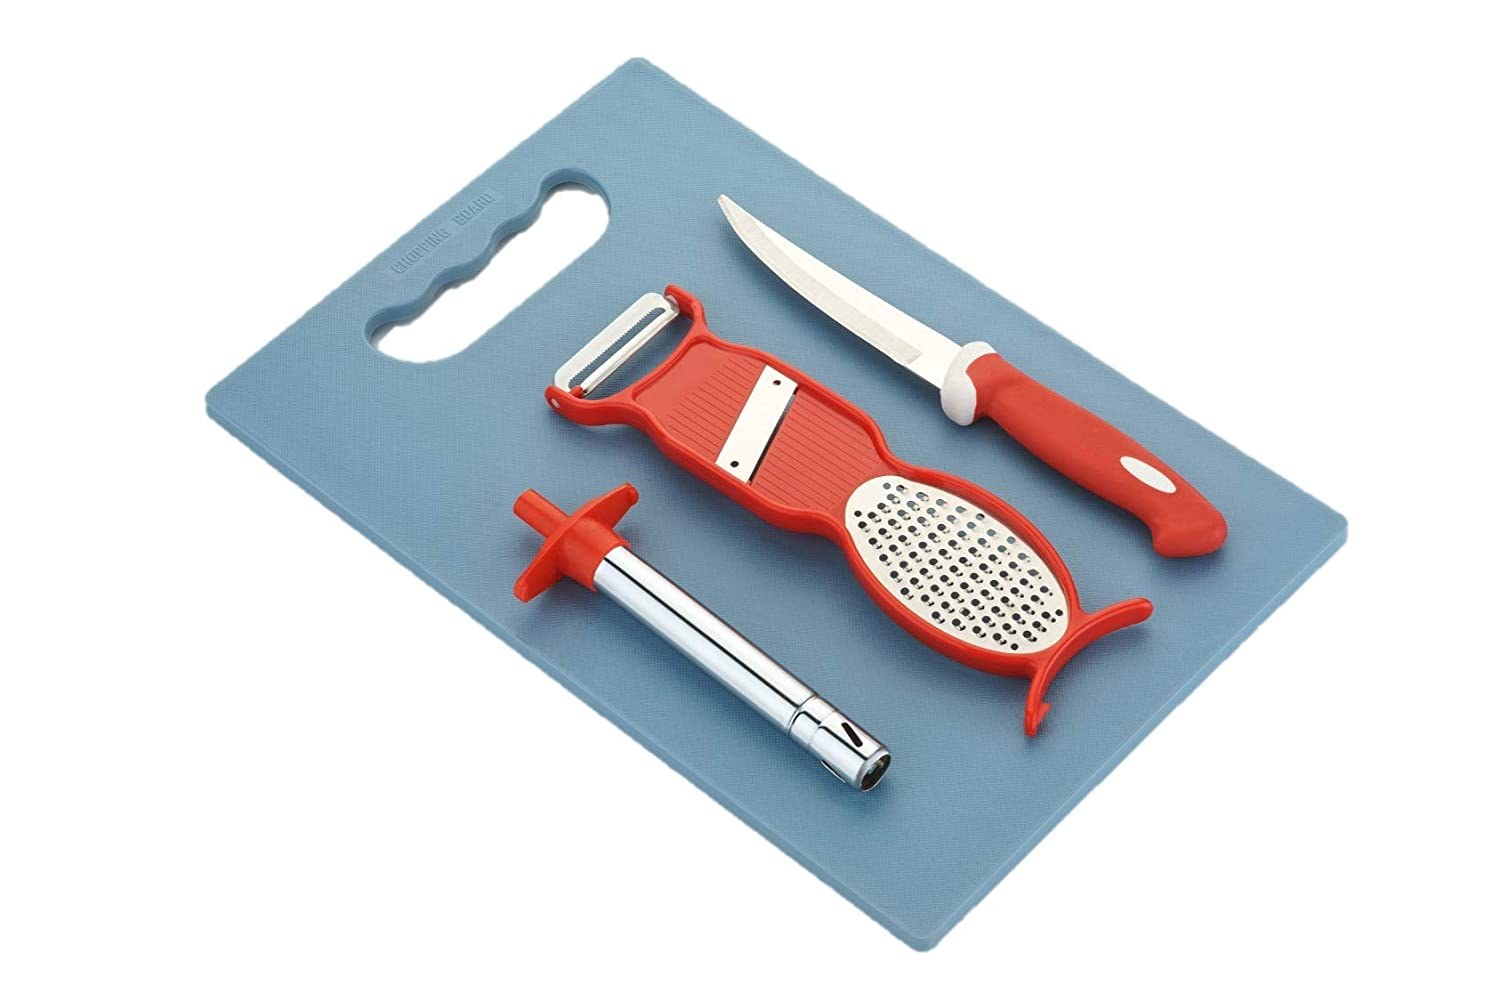 RIOMAX Combo of Chopping Board, Knife, Peeler & Gas Lighter Kitchen Tools Combo/Kitchen Tools Set